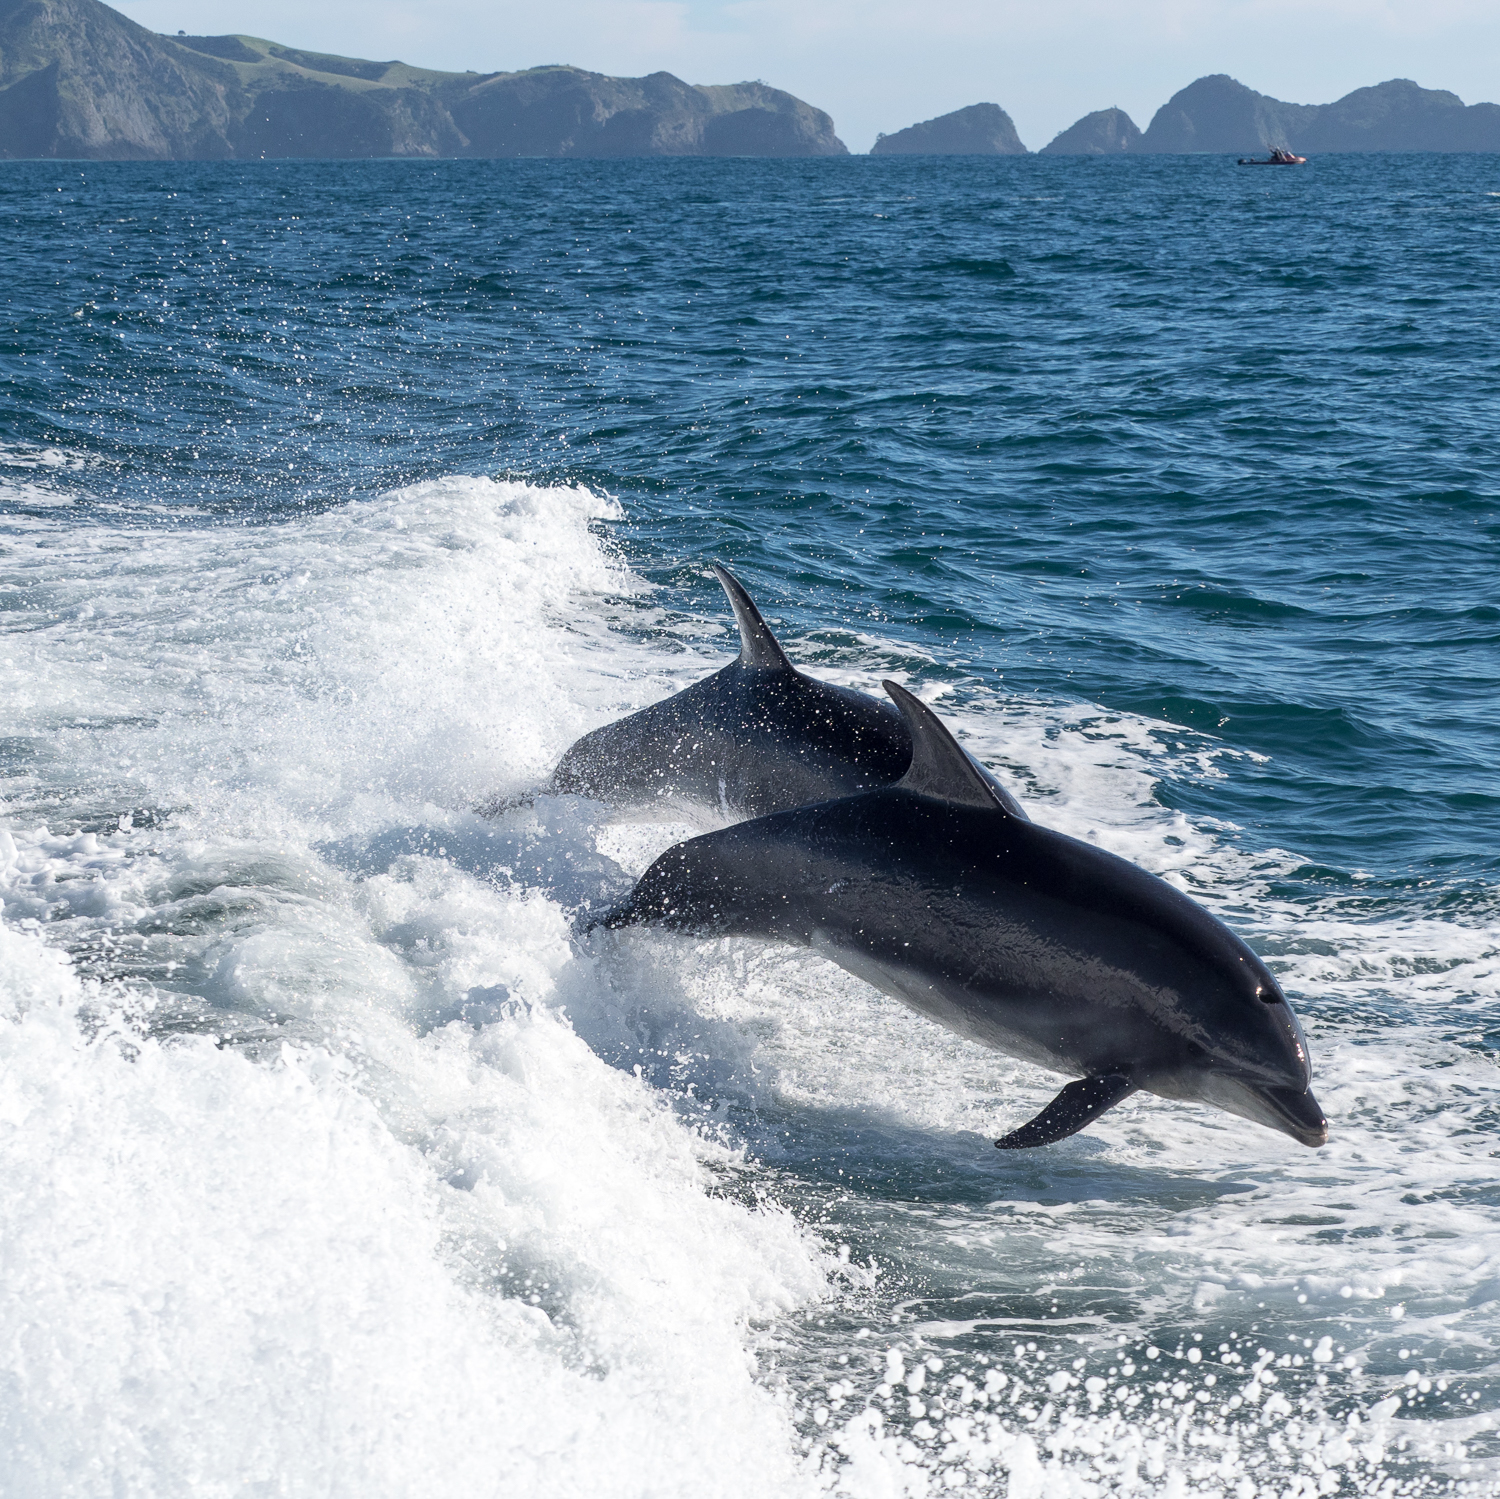 And the 40-150 f/2.8 lens was a great option for photographing these dolphins travelling at speed in the Bay of Islands, NZ.